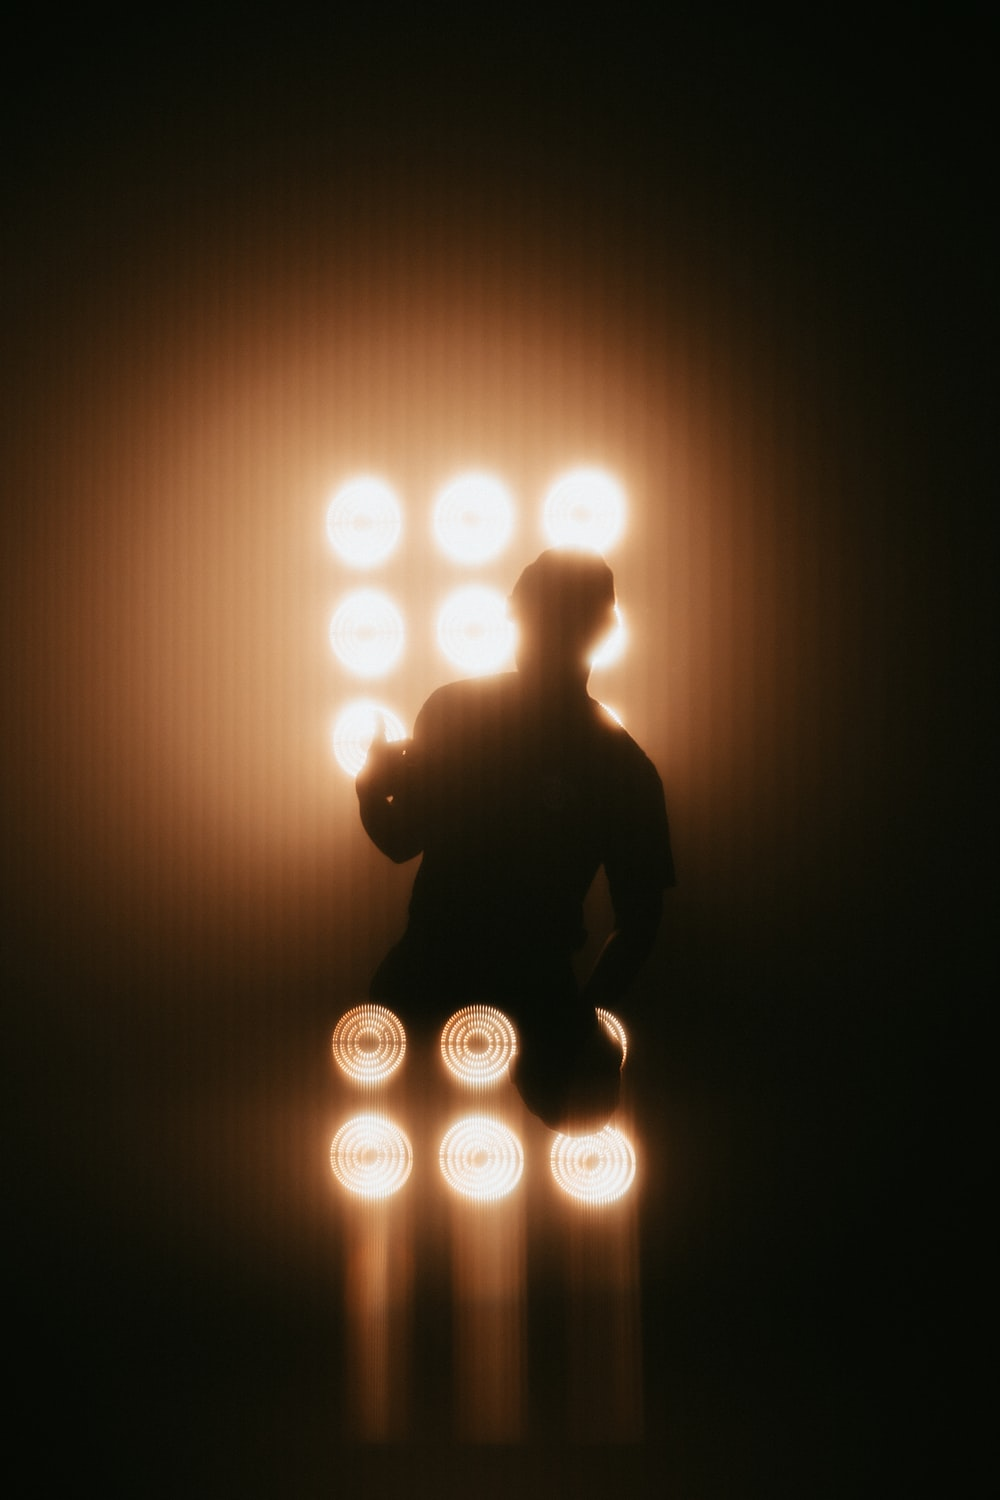 silhouette of man sitting on chair